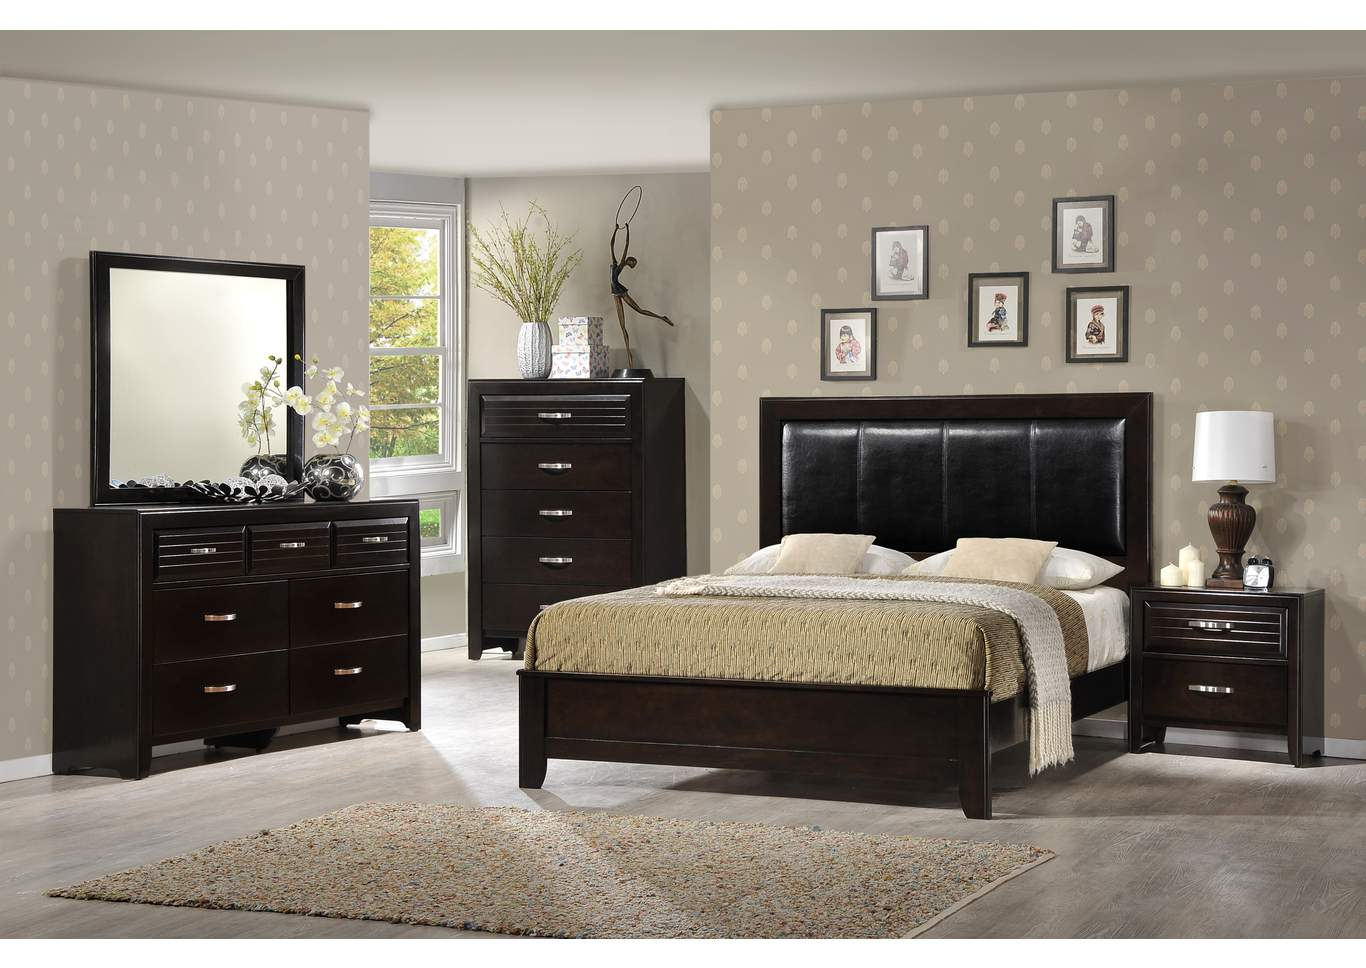 Jocelyn Upholstered Queen Bed w/Dresser, Mirror, Drawer Chest and Nightstand,Crown Mark